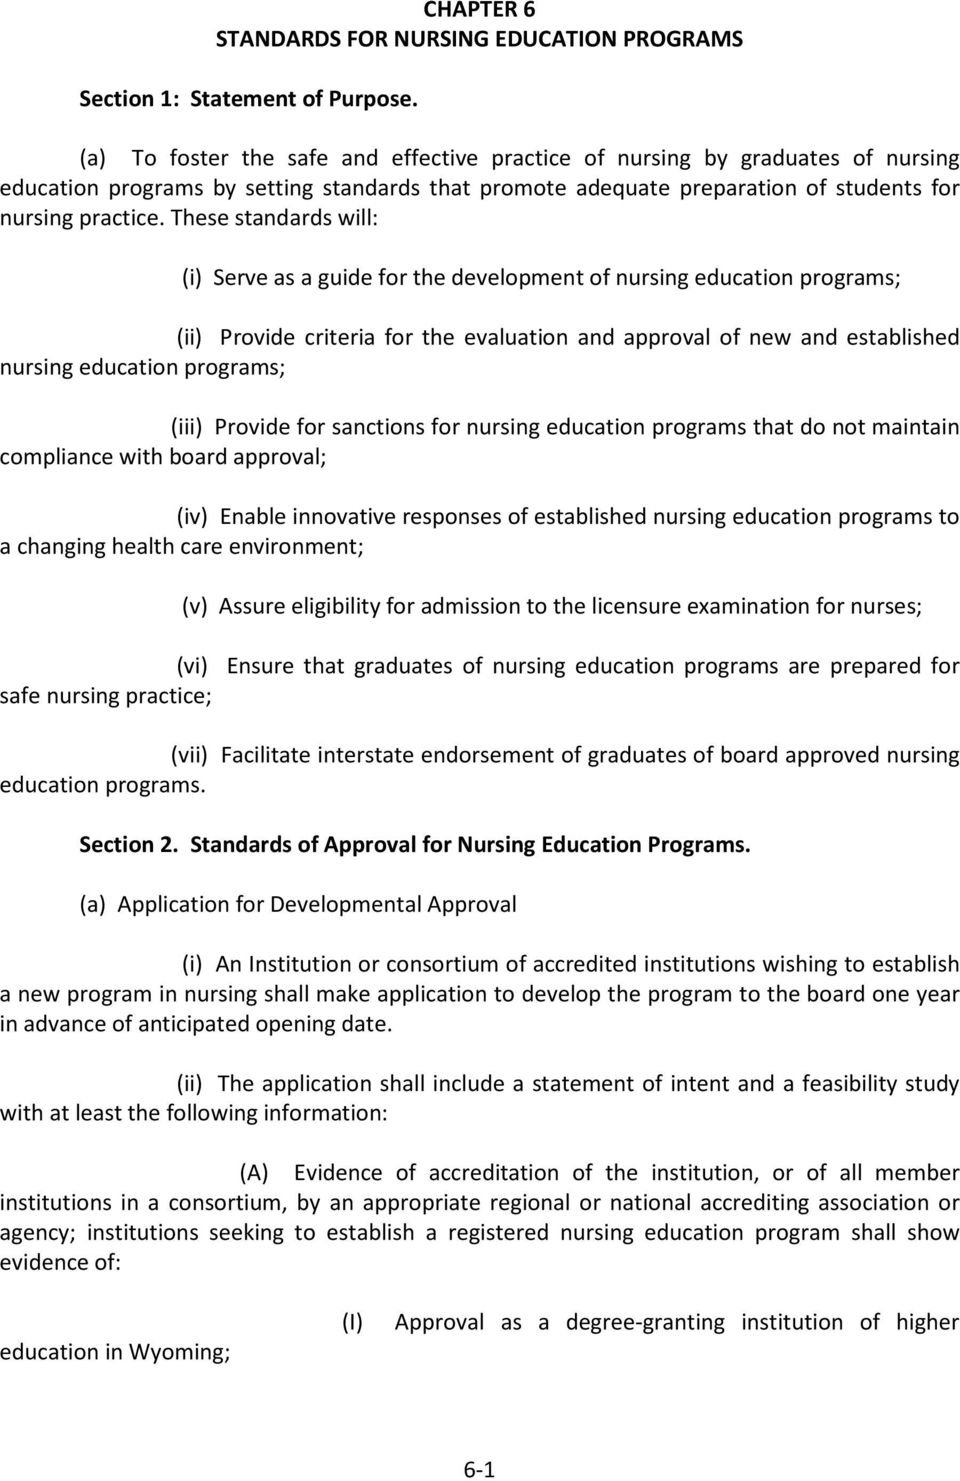 These standards will: (i) Serve as a guide for the development of nursing education programs; (ii) Provide criteria for the evaluation and approval of new and established nursing education programs;